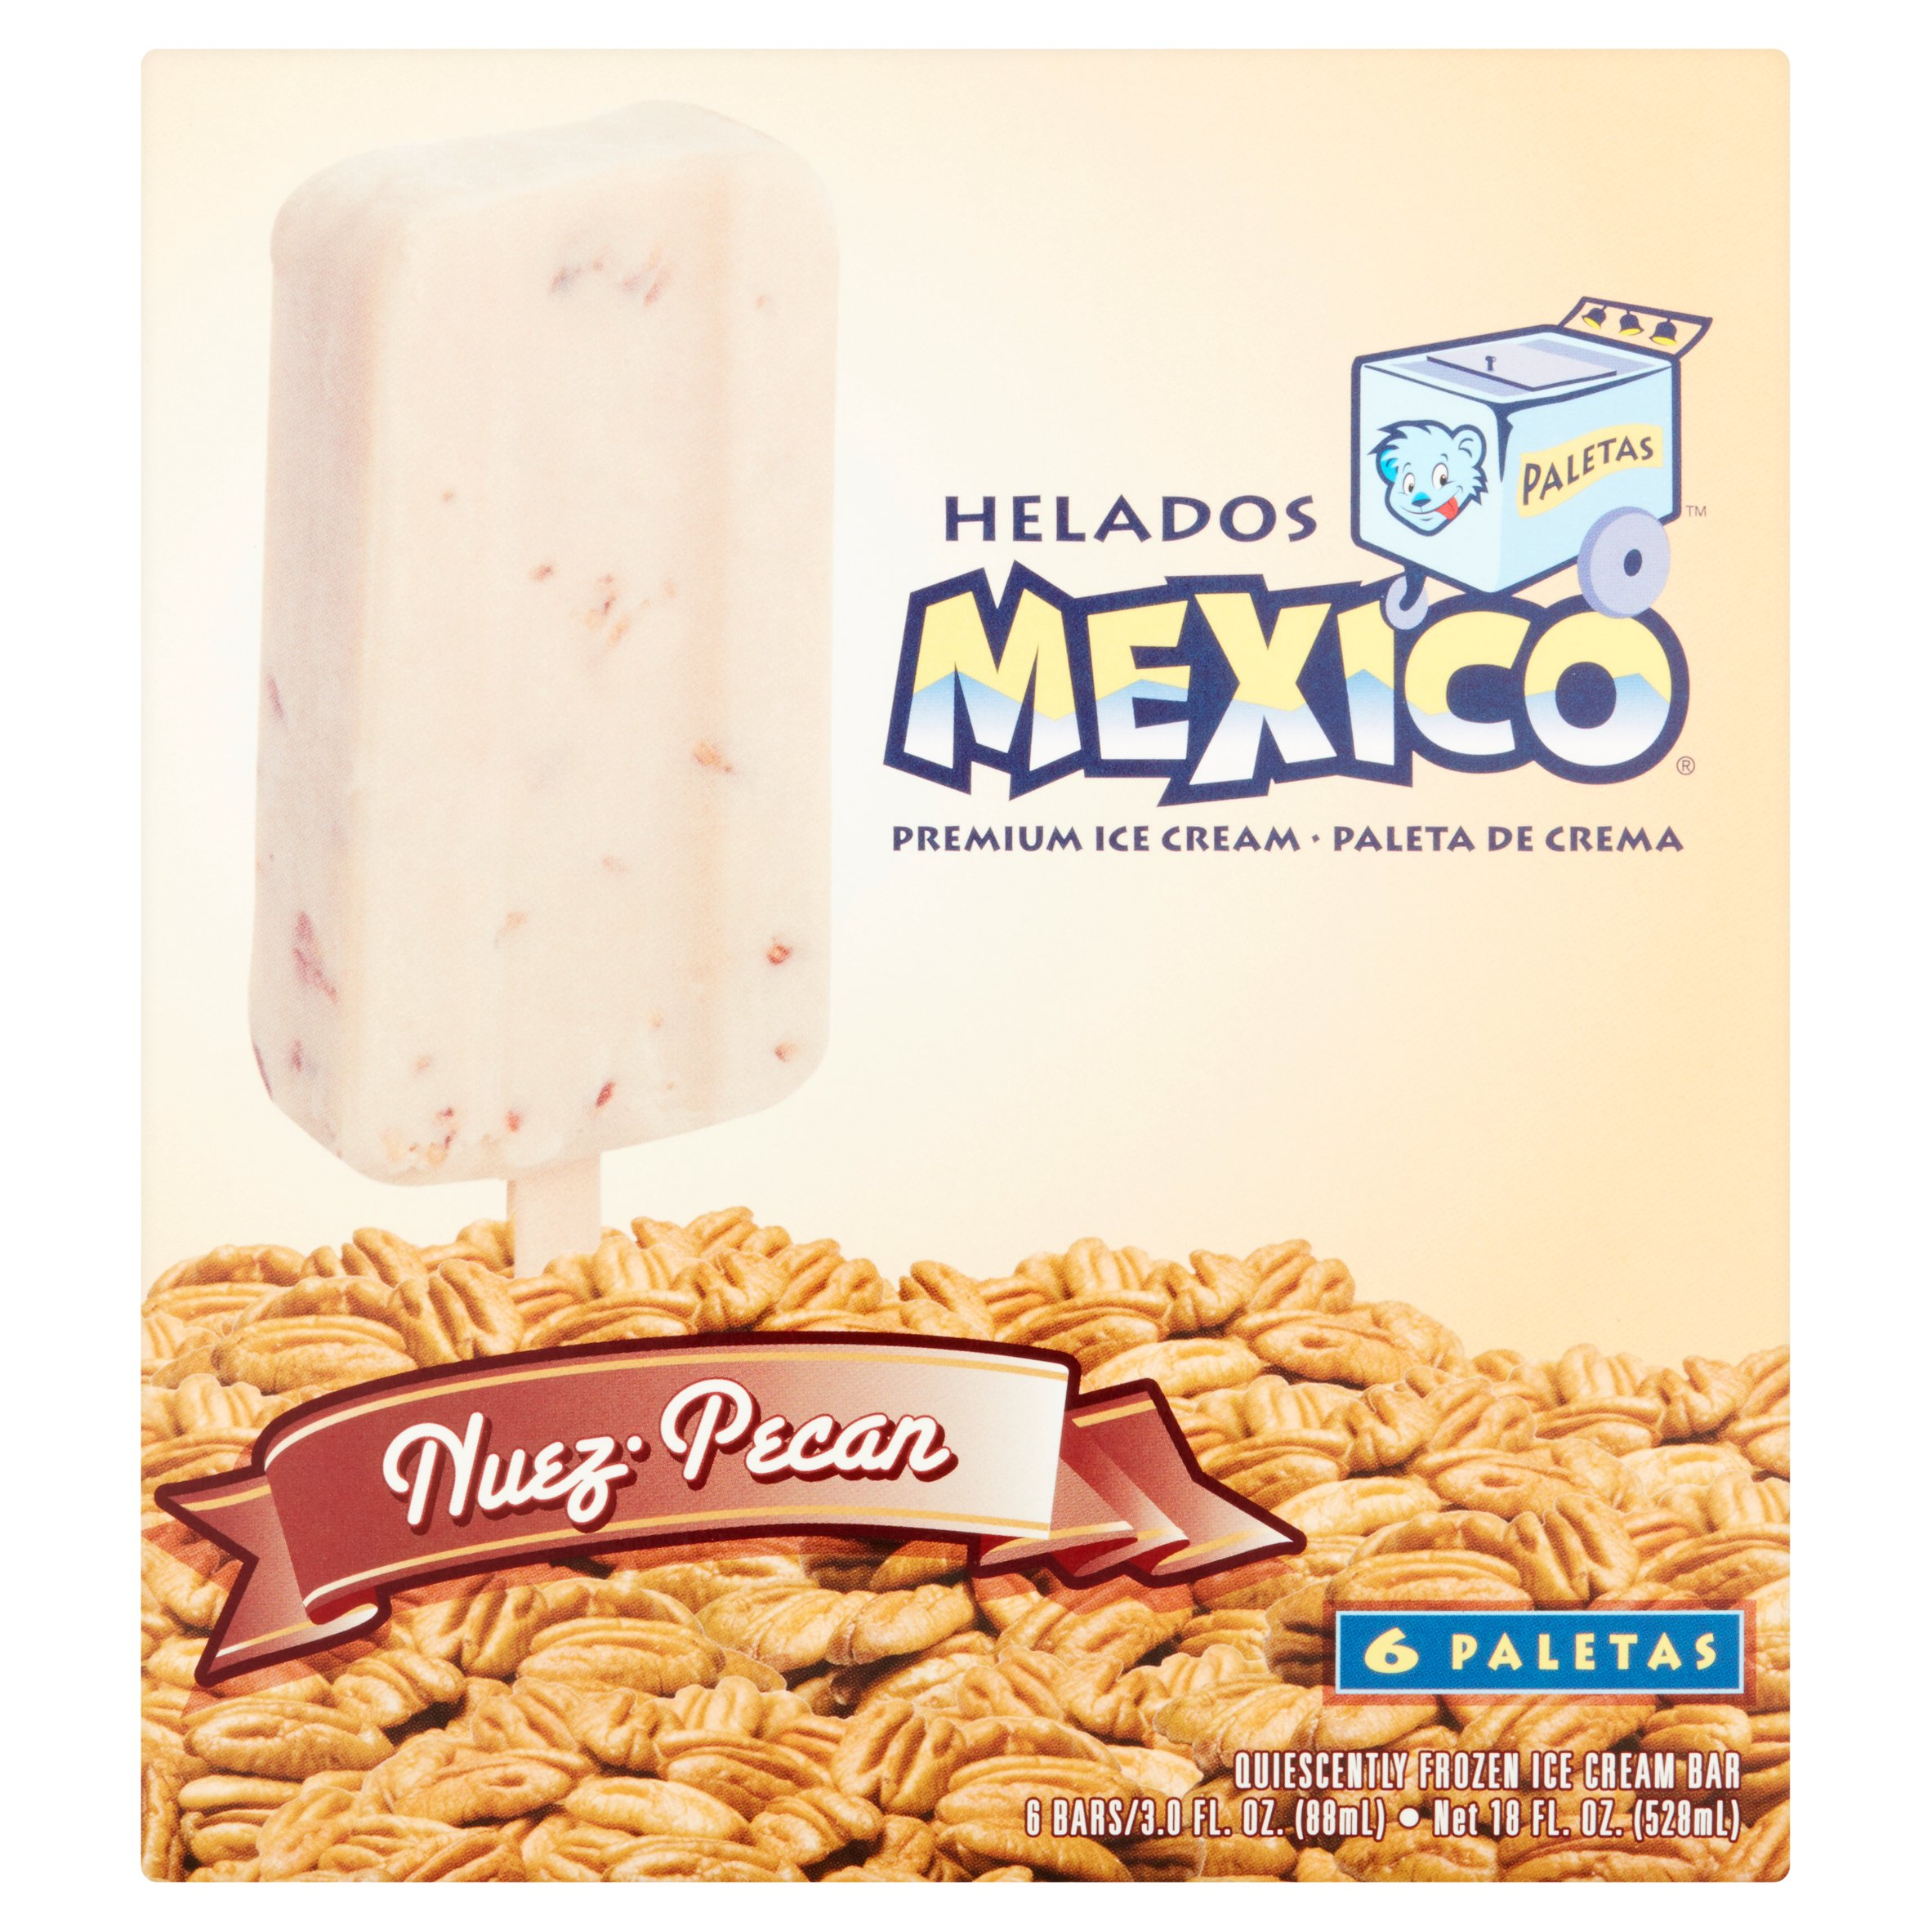 Helados Mexico Pecan Premium Ice Cream, 3.0 fl oz, 6 count